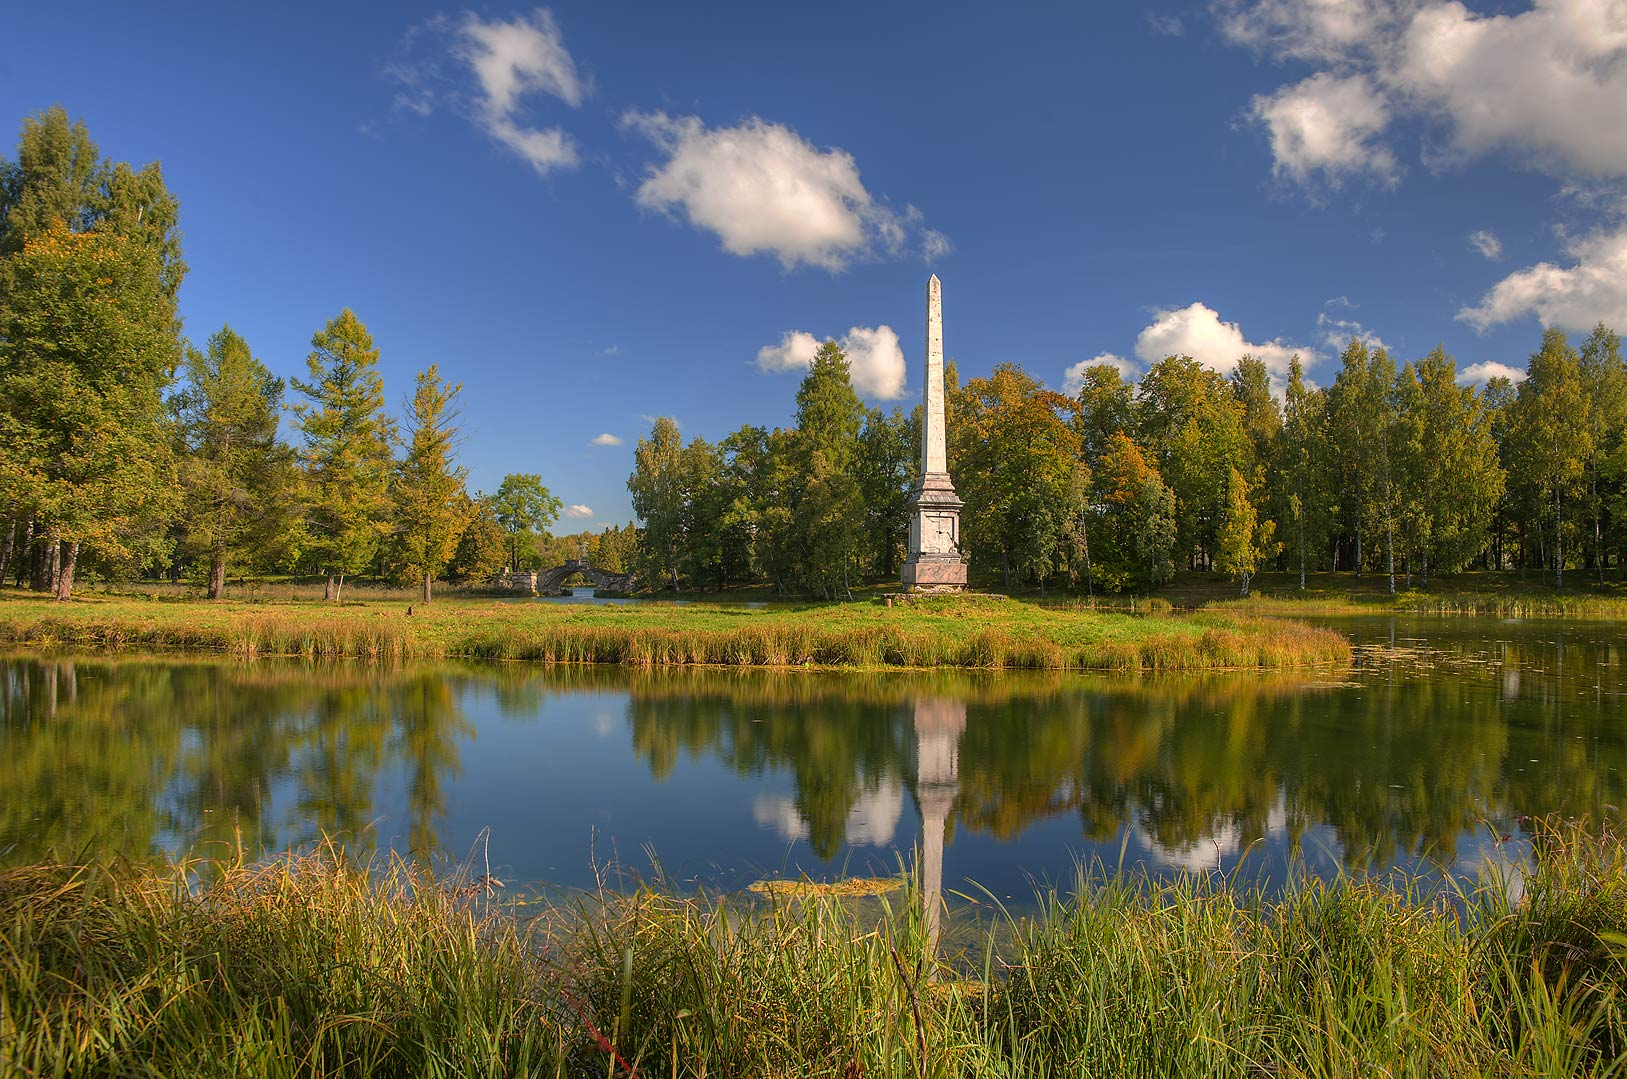 Reflection of Chesma Monument in Beloe Lake in...a suburb of St.Petersburg, Russia